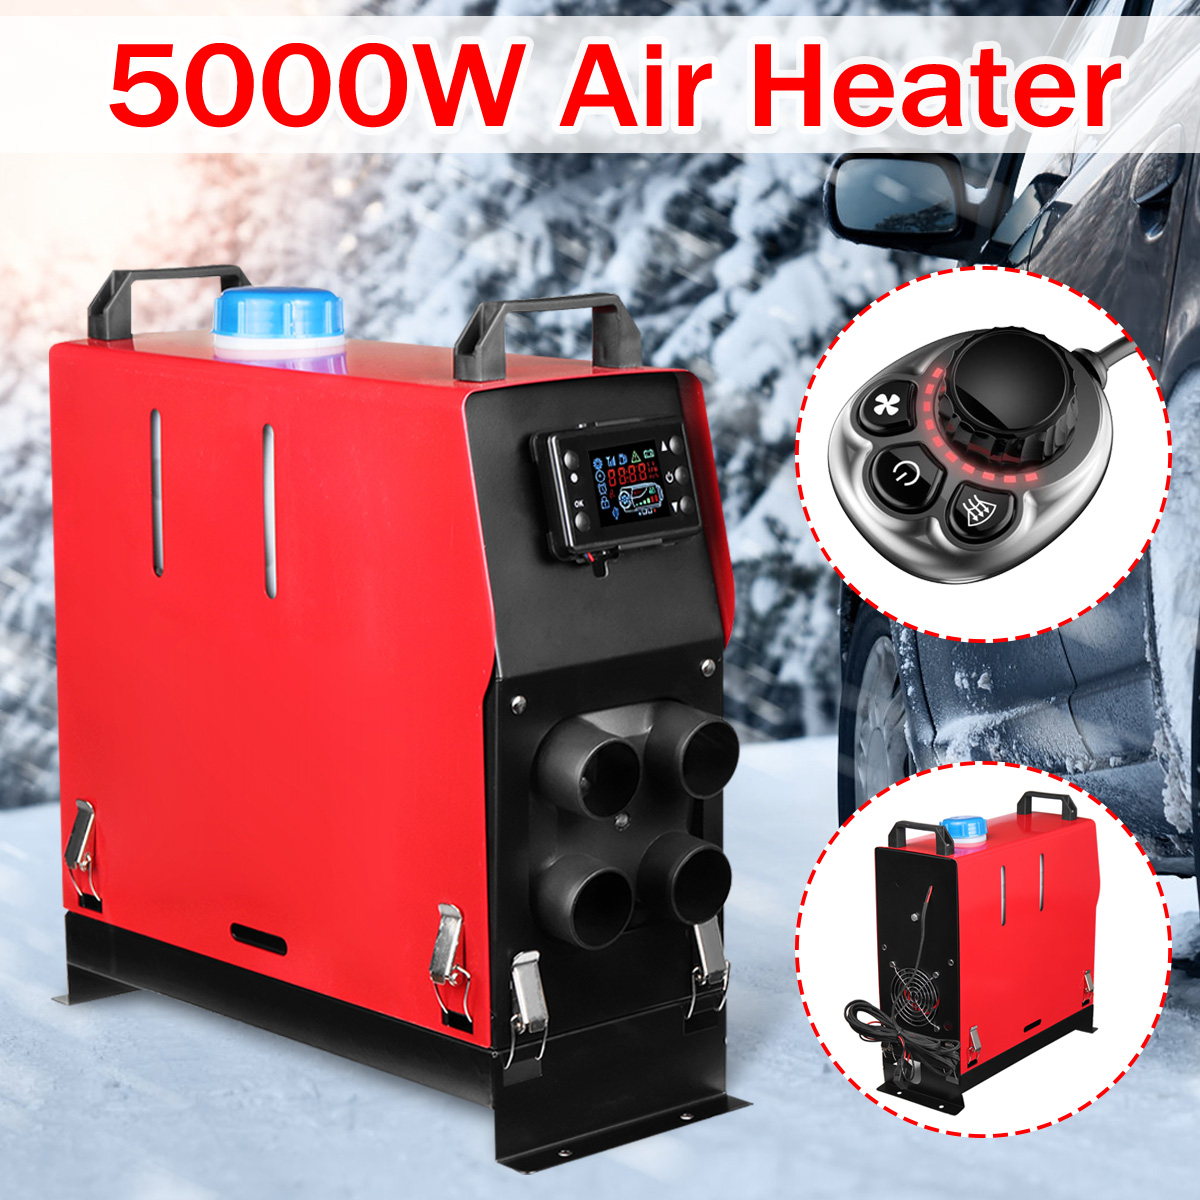 5000W Air diesels Heater 5KW 12V 4 Holes Car Heater For Trucks Motor-Homes Boats Bus +Newest Switch